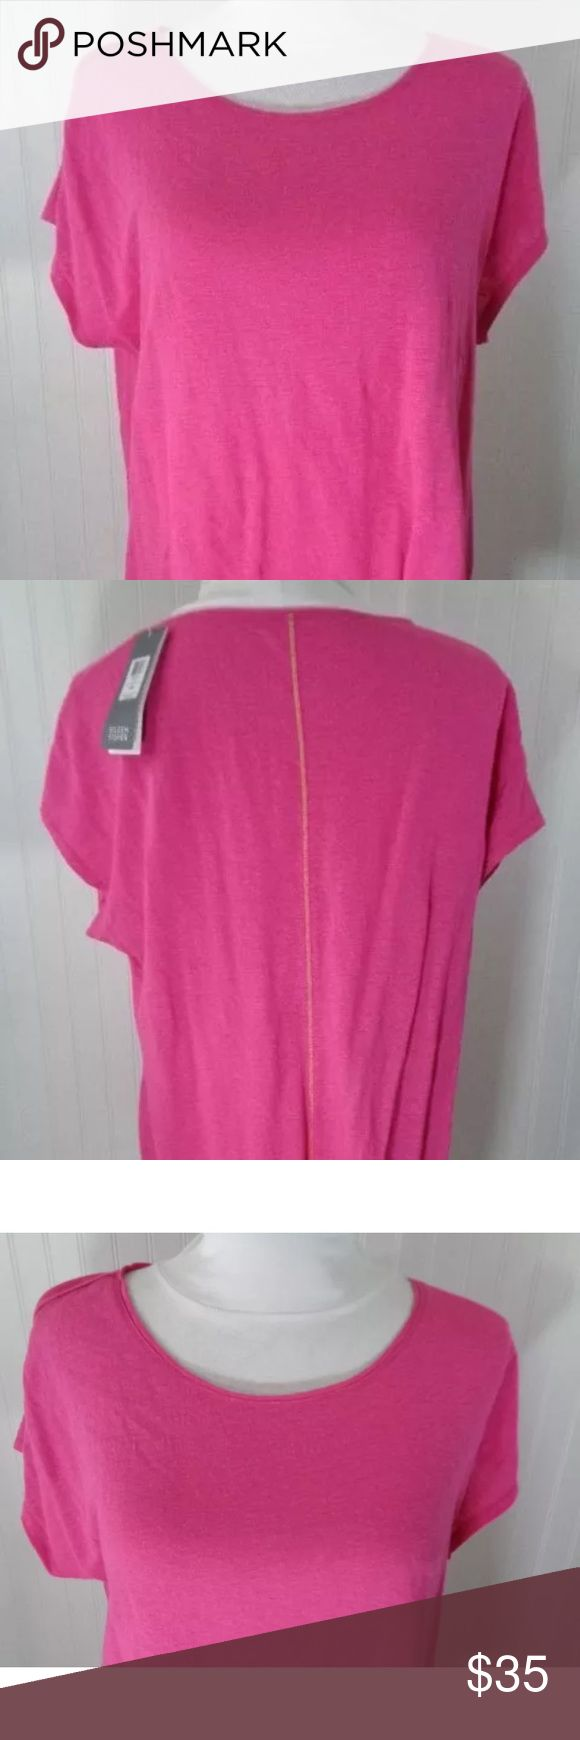 Eileen Fisher Linen Shirt Size Medium M Pink NWT Eileen Fisher Linen Shirt Size Medium M Pink Cap Sleeve Tunic Top New! Misc4 Eileen Fisher Tops Tees - Short Sleeve